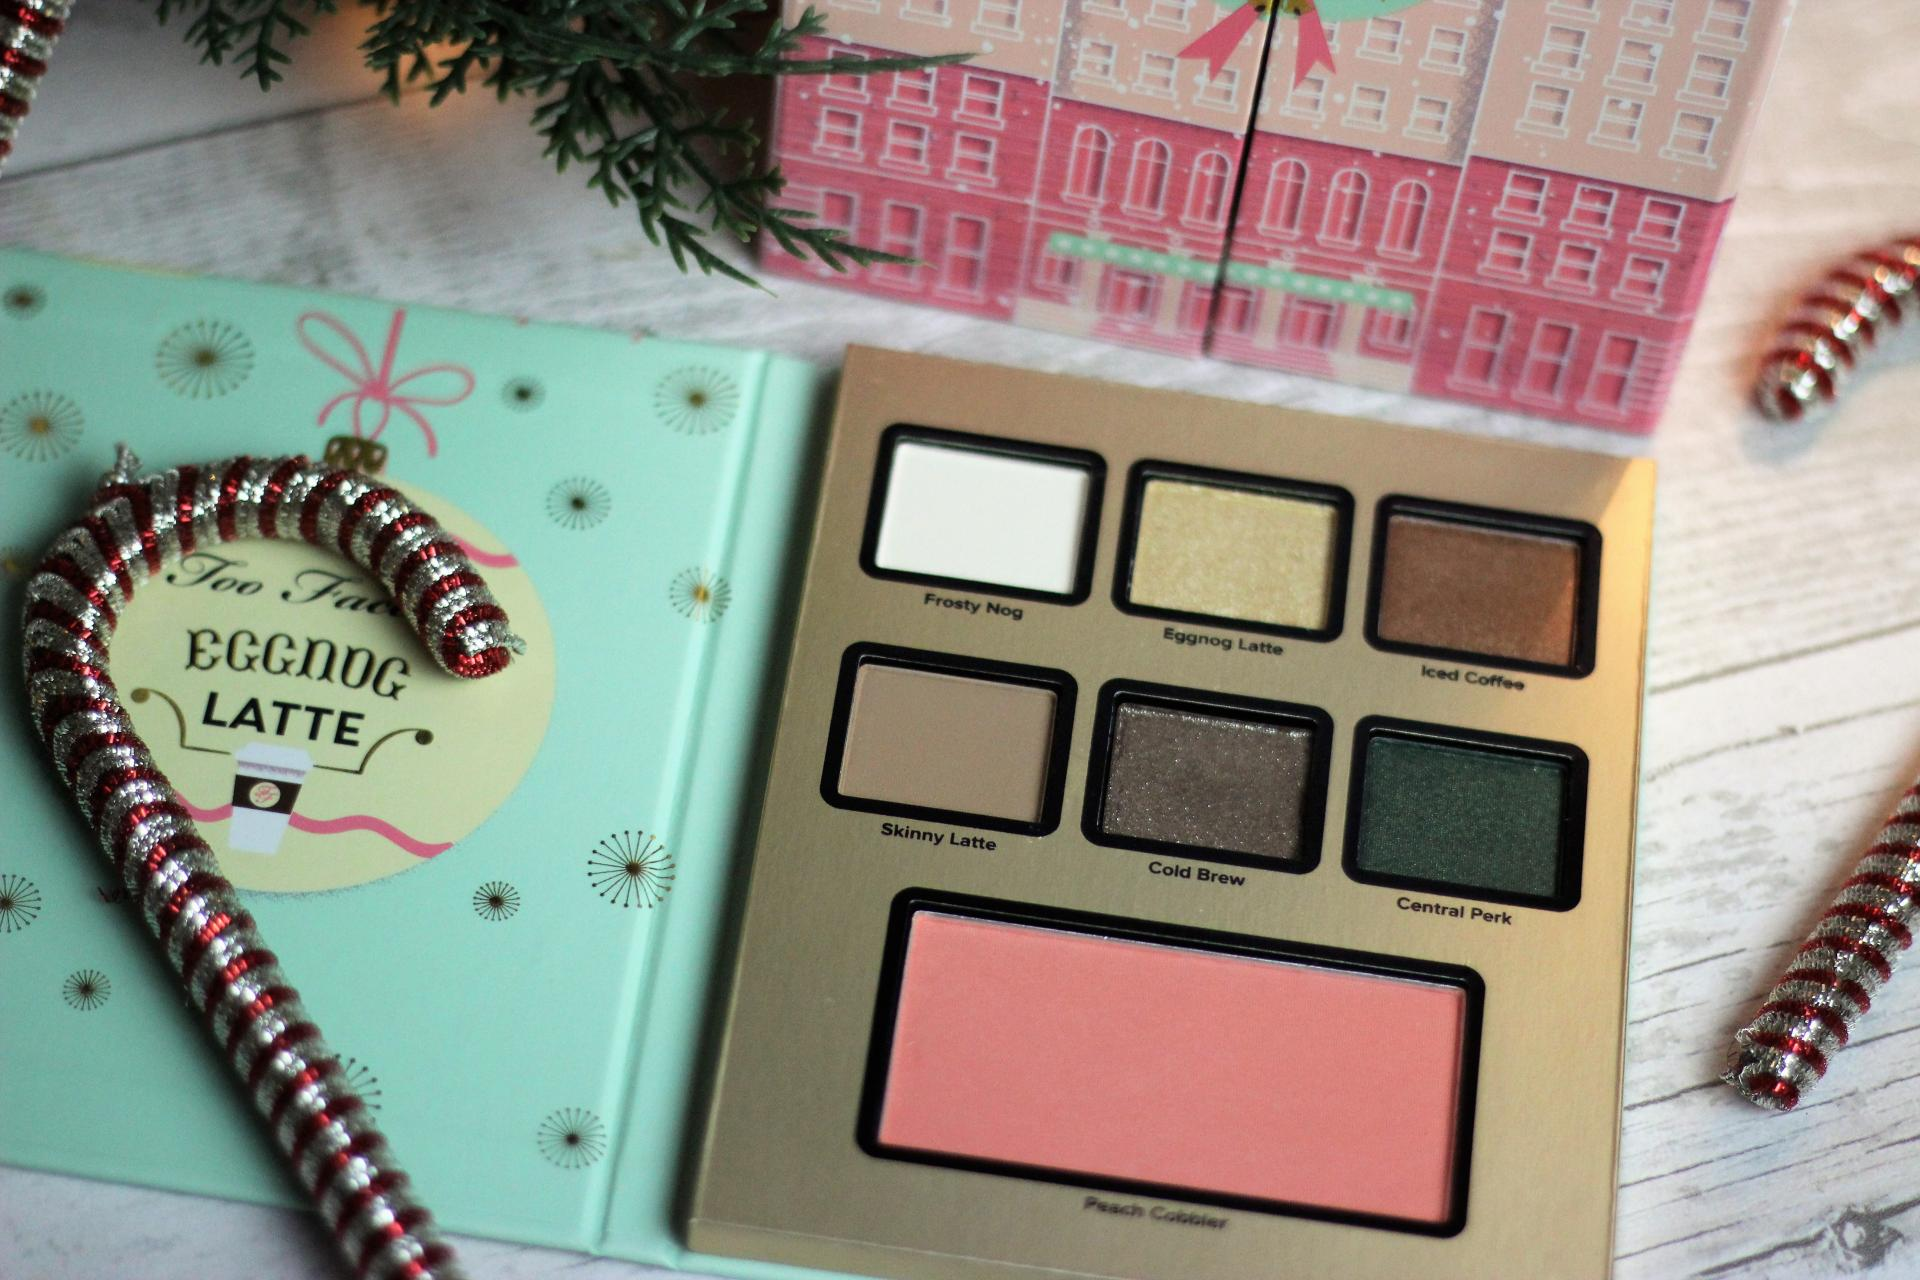 Too Faced Grande Hotel Café